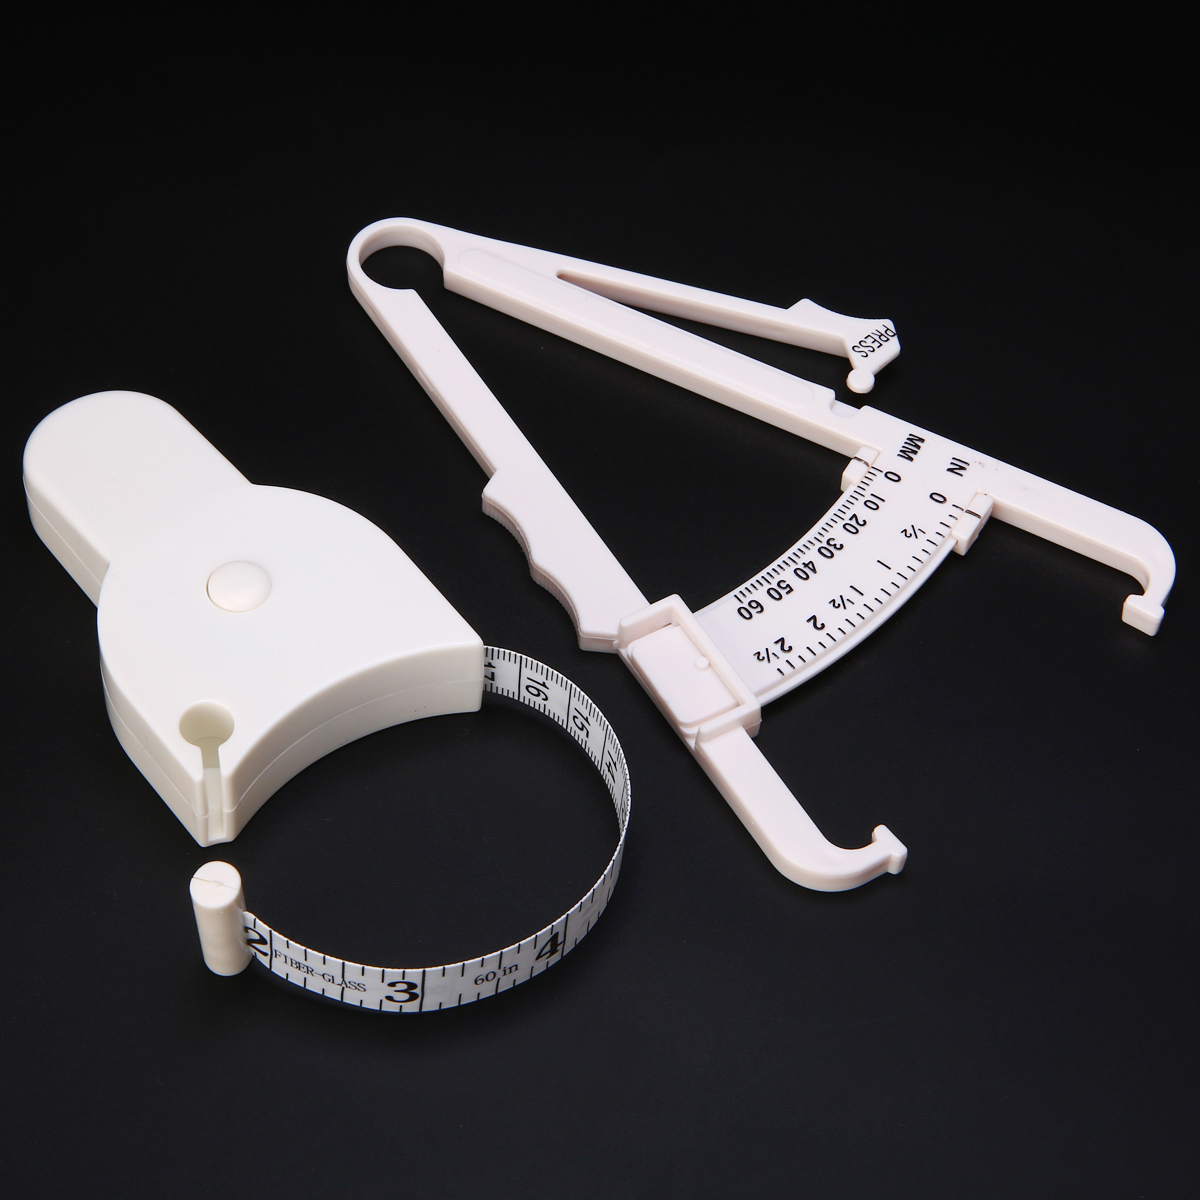 2Pcs/Set White PVC Body Fat Caliper Measuring Tape Tester Lightweight Fitness Lose Weight Equipmnet For Body Building